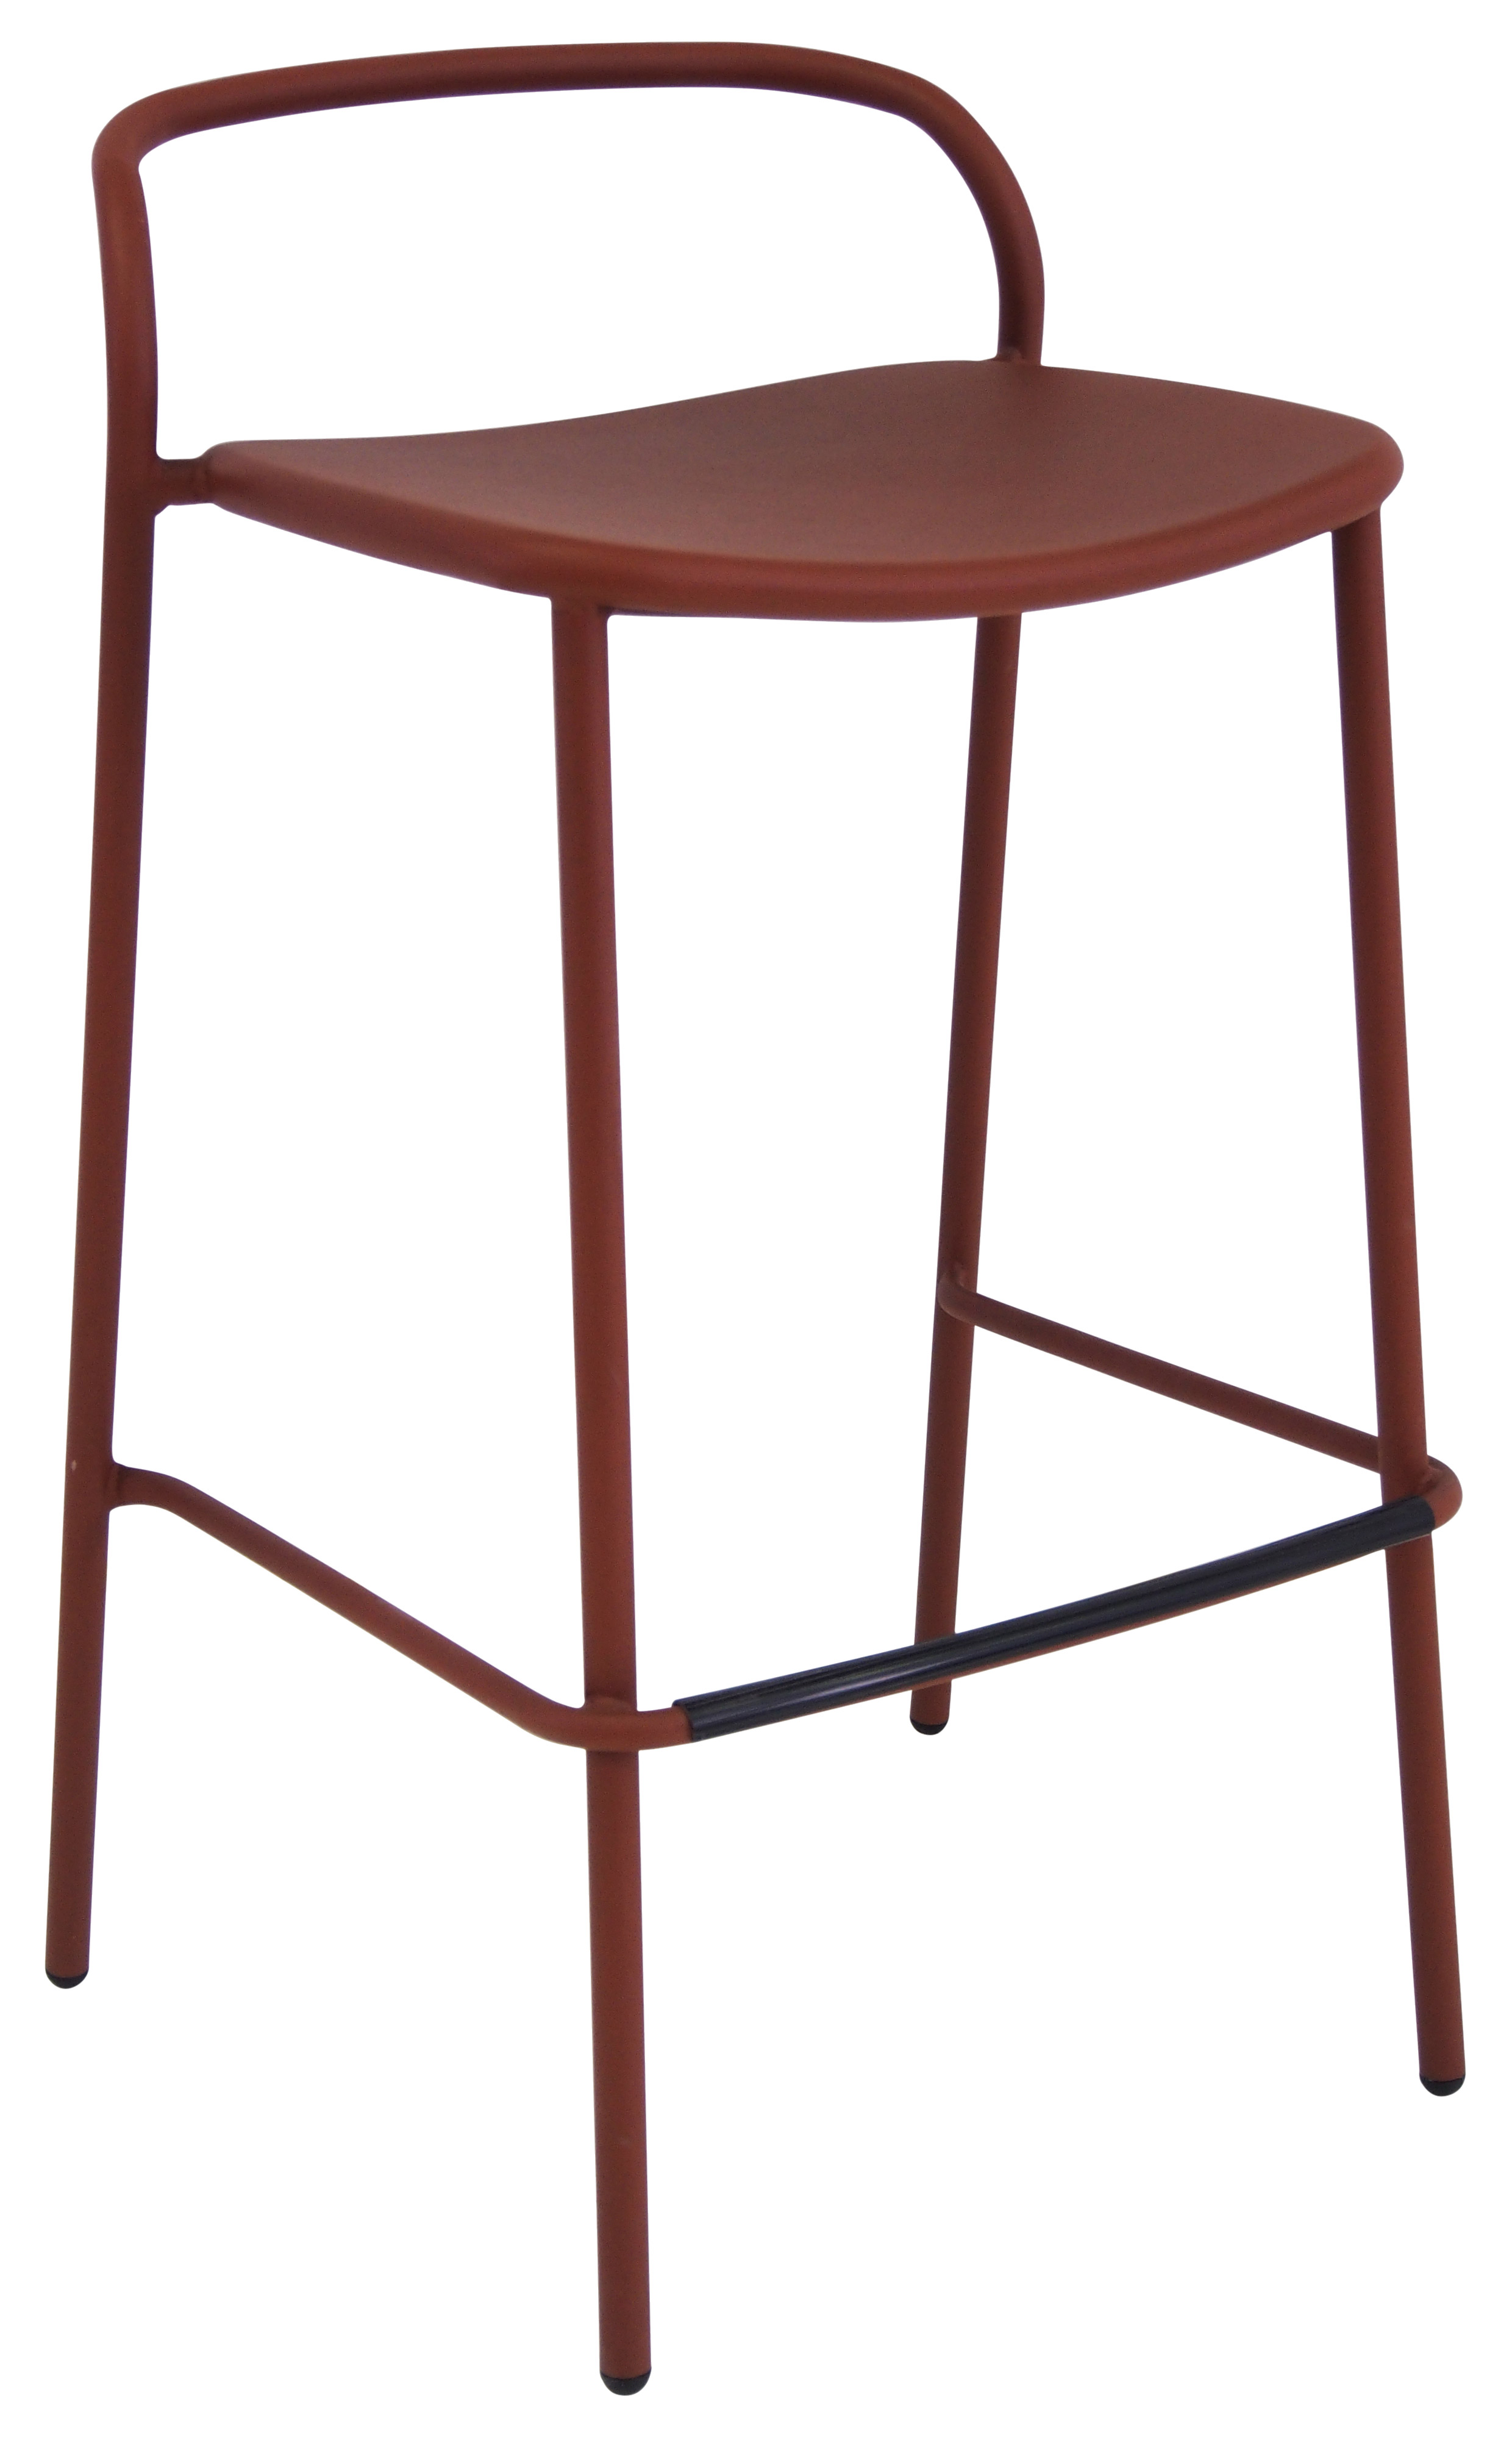 emuamericas, llc 654 bar stool, stacking, outdoor